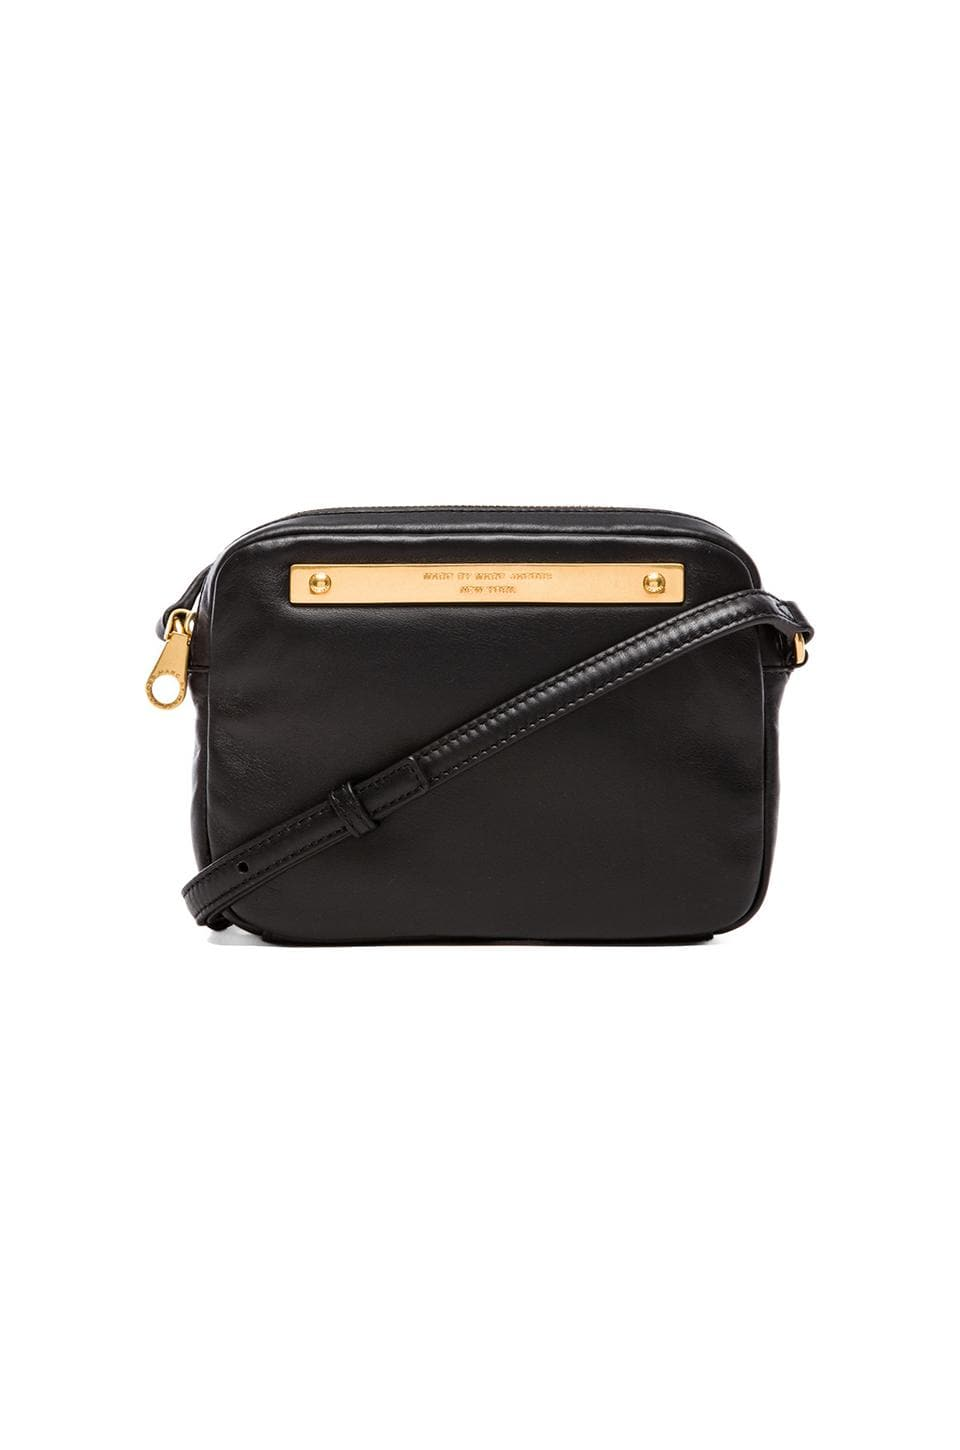 Marc by Marc Jacobs Goodbye Columbus Mireu Crossbody in Black